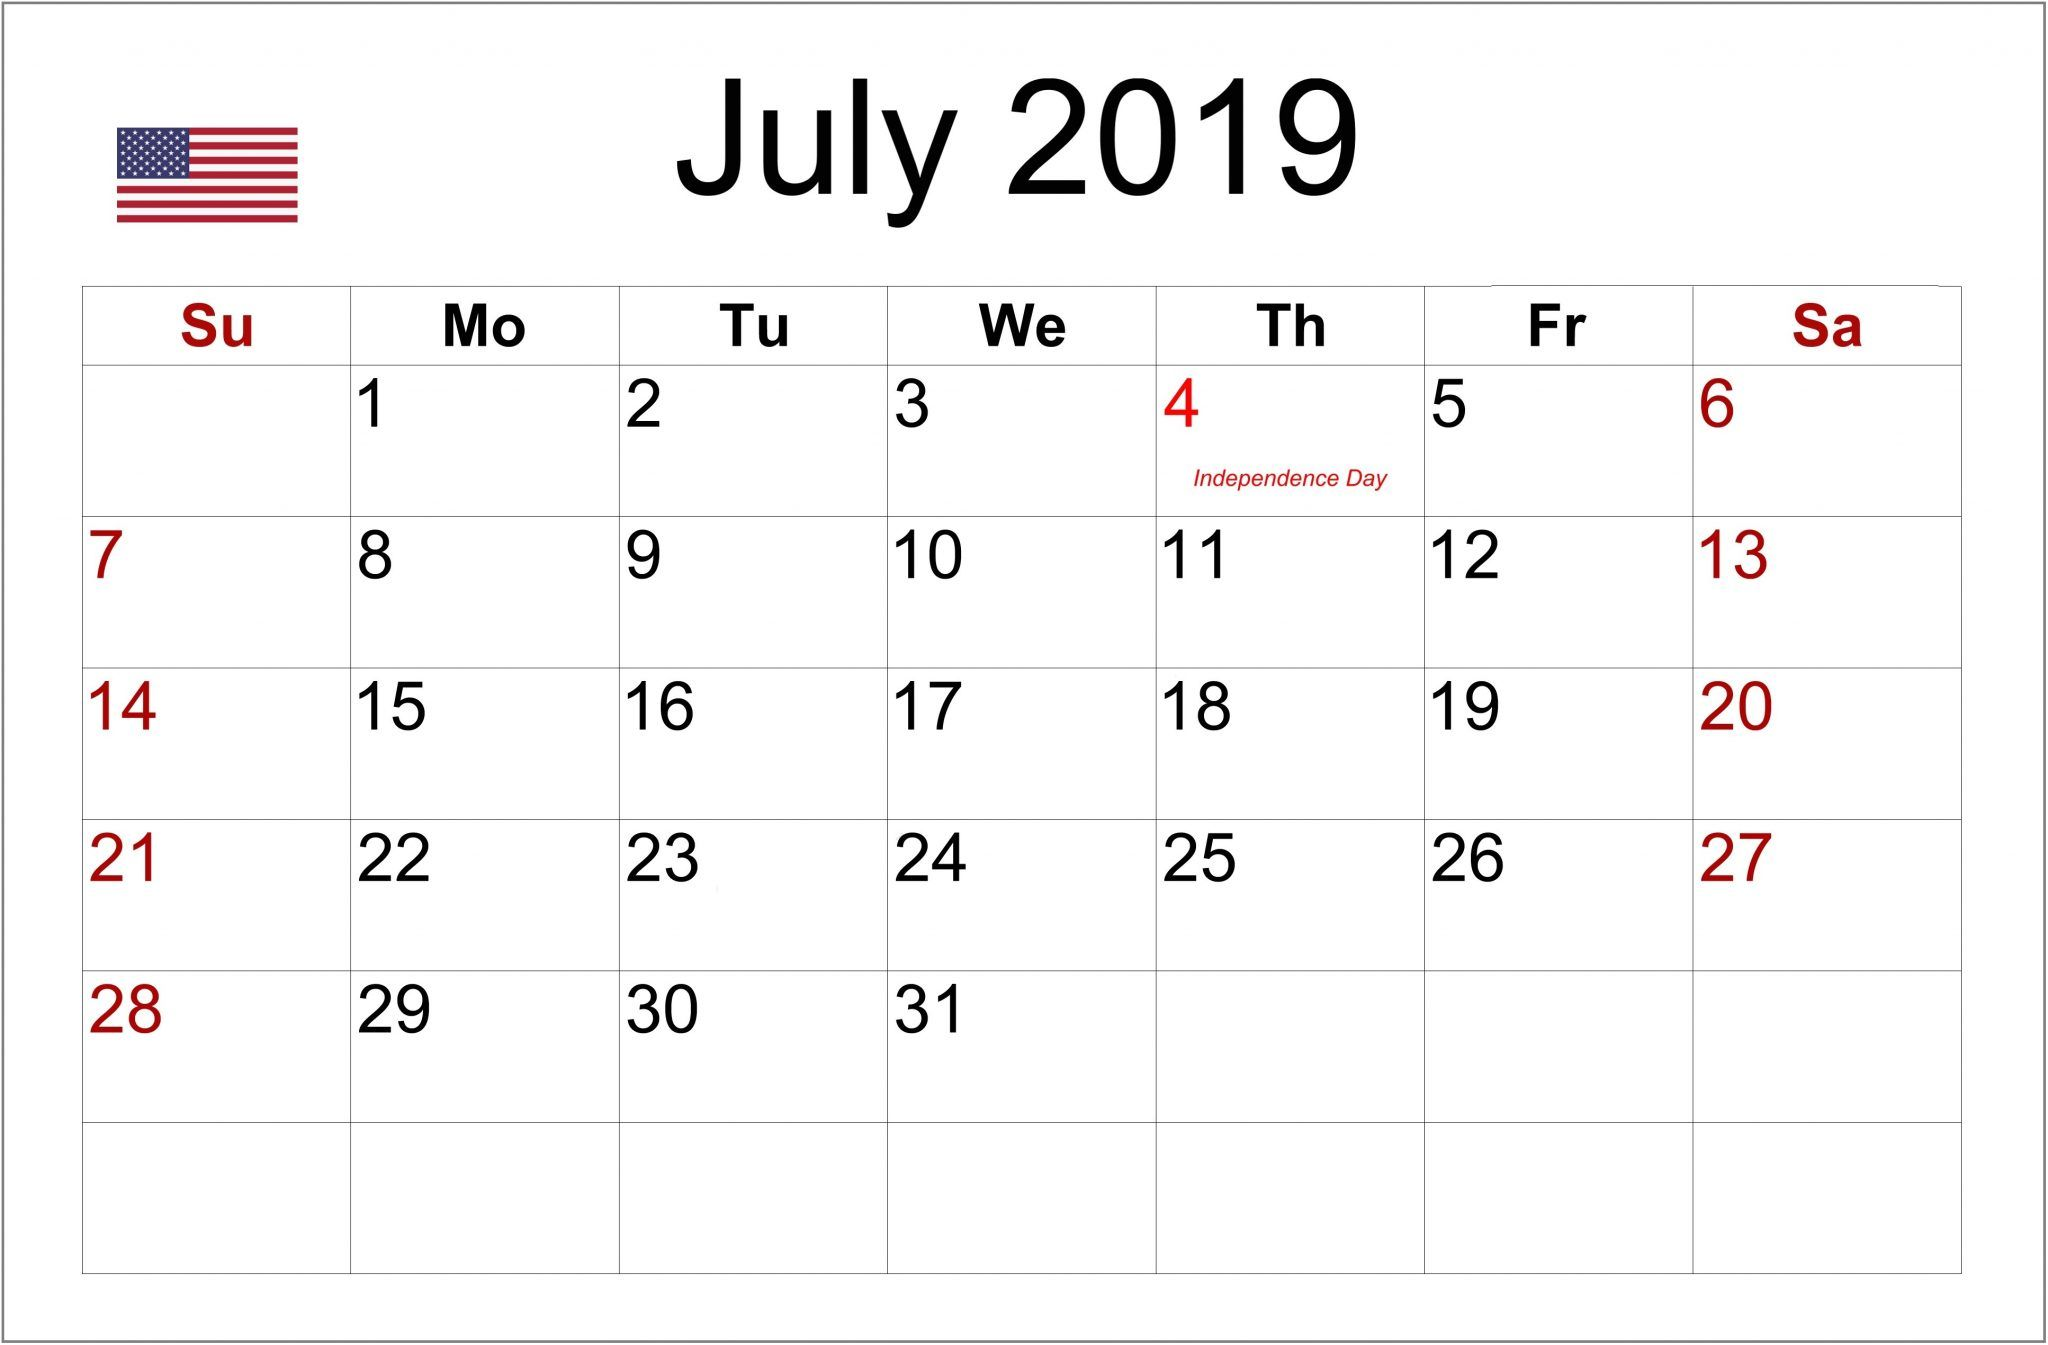 July 2019 USA Holidays Calendar